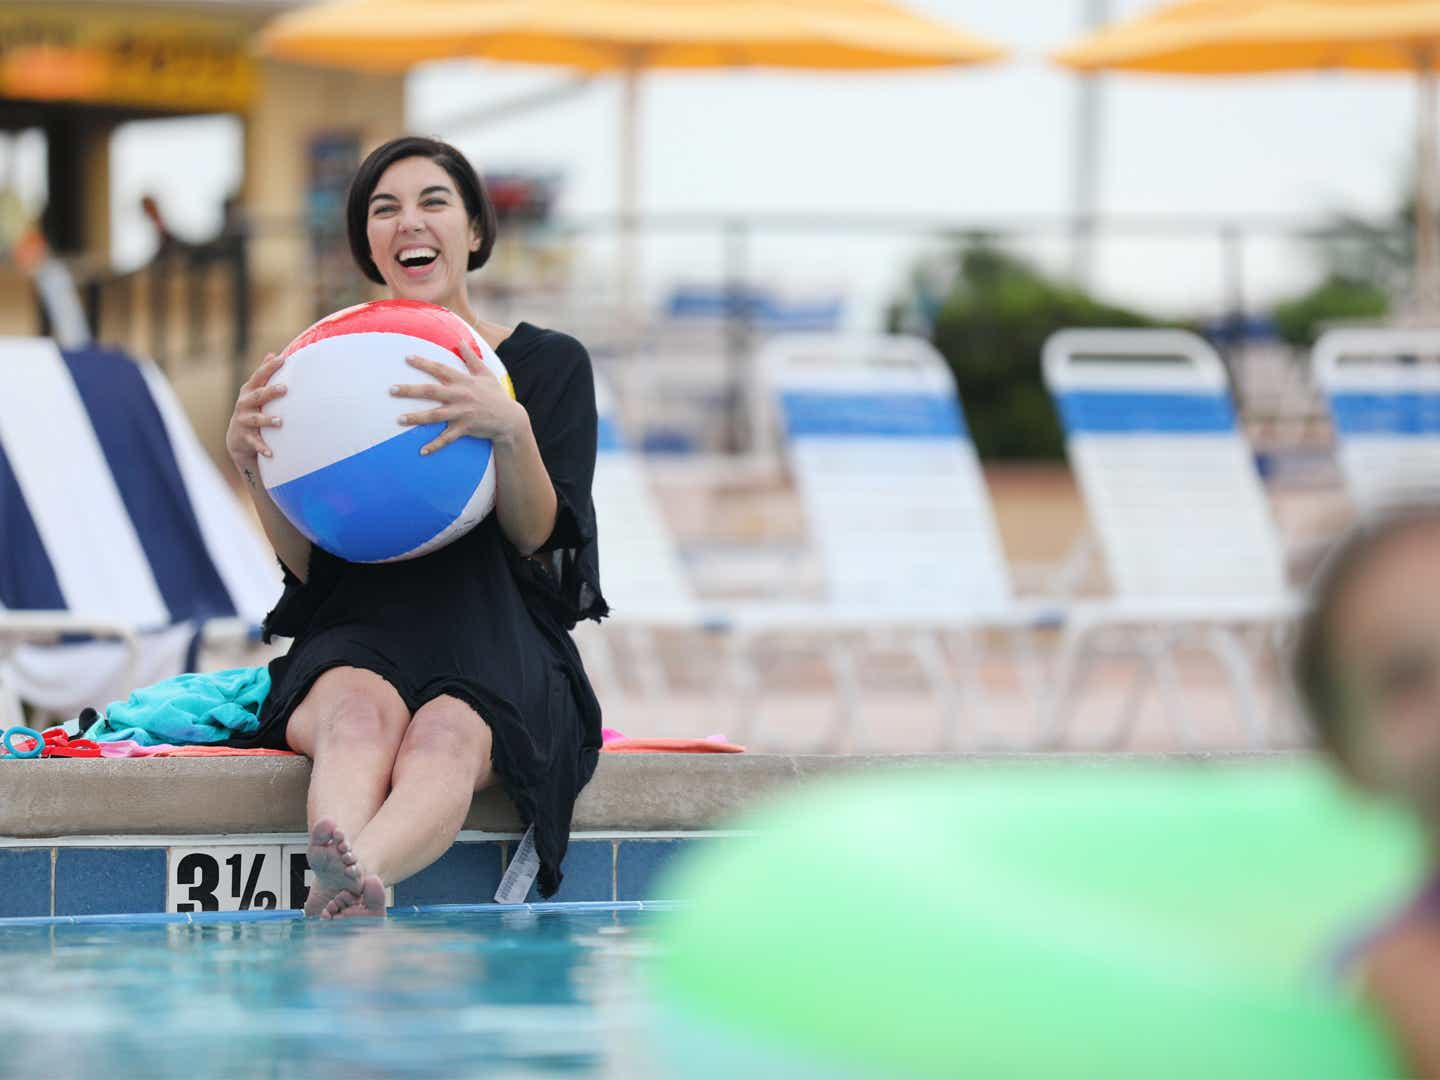 Woman holding beach ball by pool